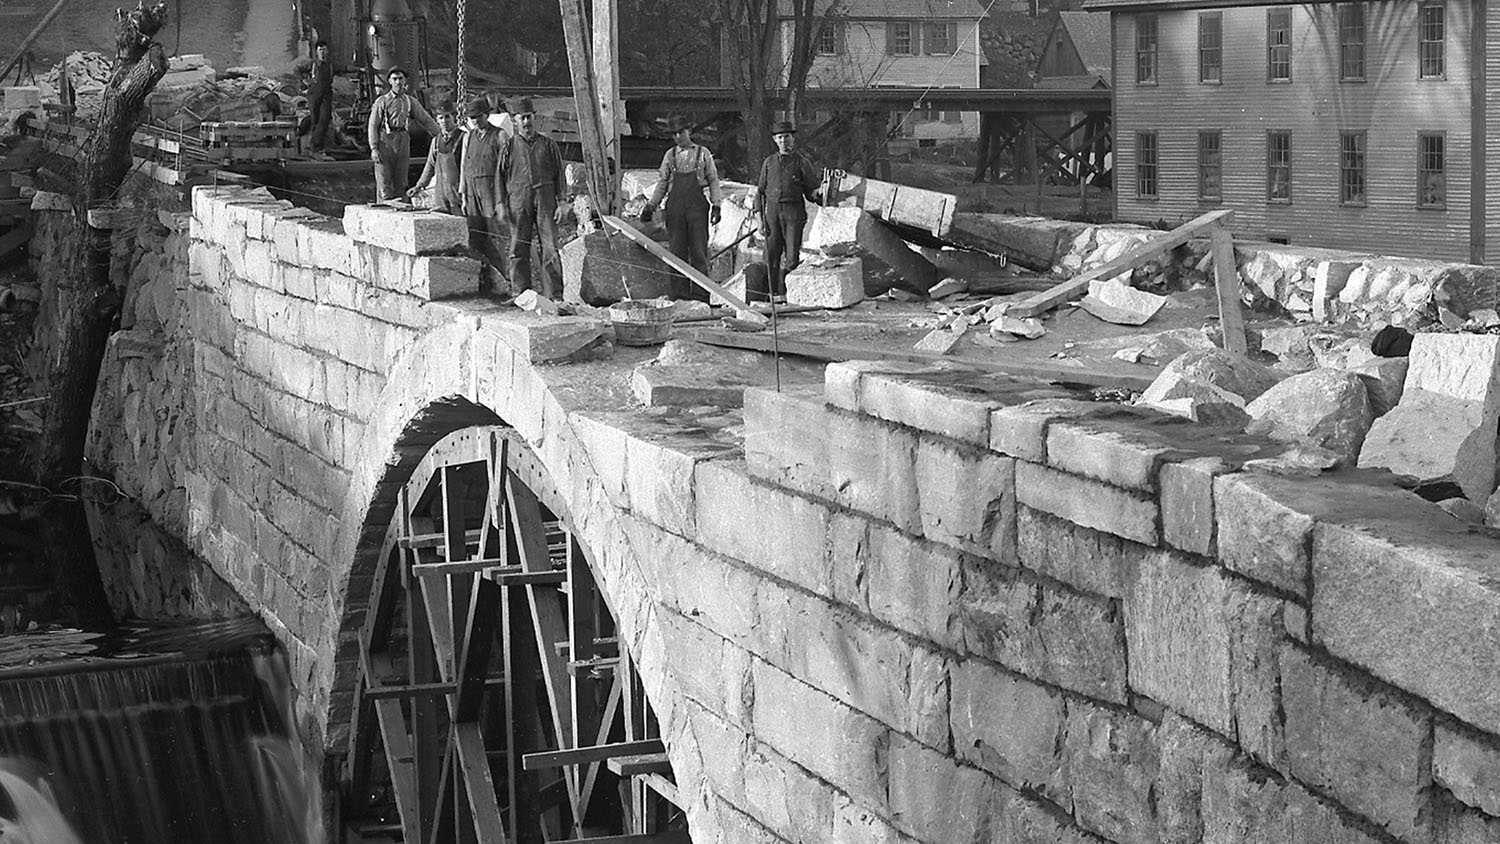 Repares to stone arch bridge on Bridge Street after flood washout in 1892